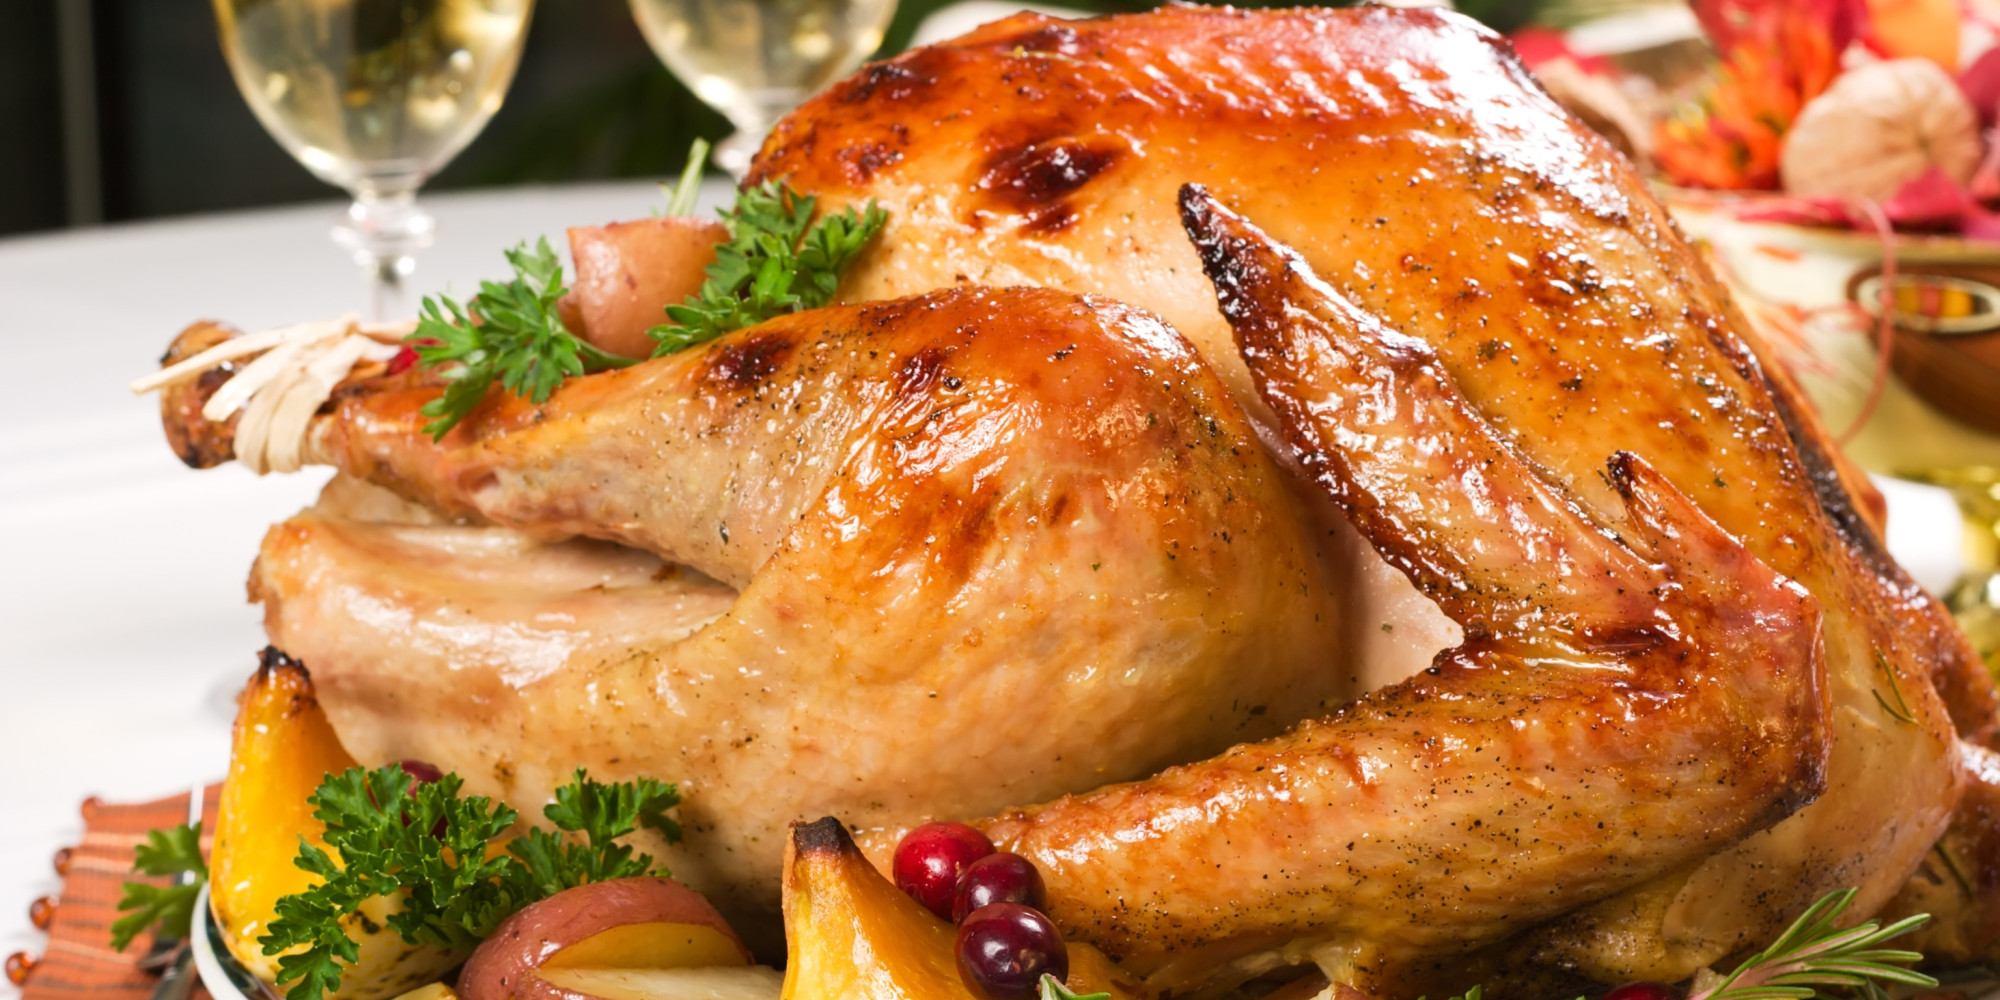 48 835 reasons to enjoy lots of food this thanksgiving for Why do we eat turkey on thanksgiving